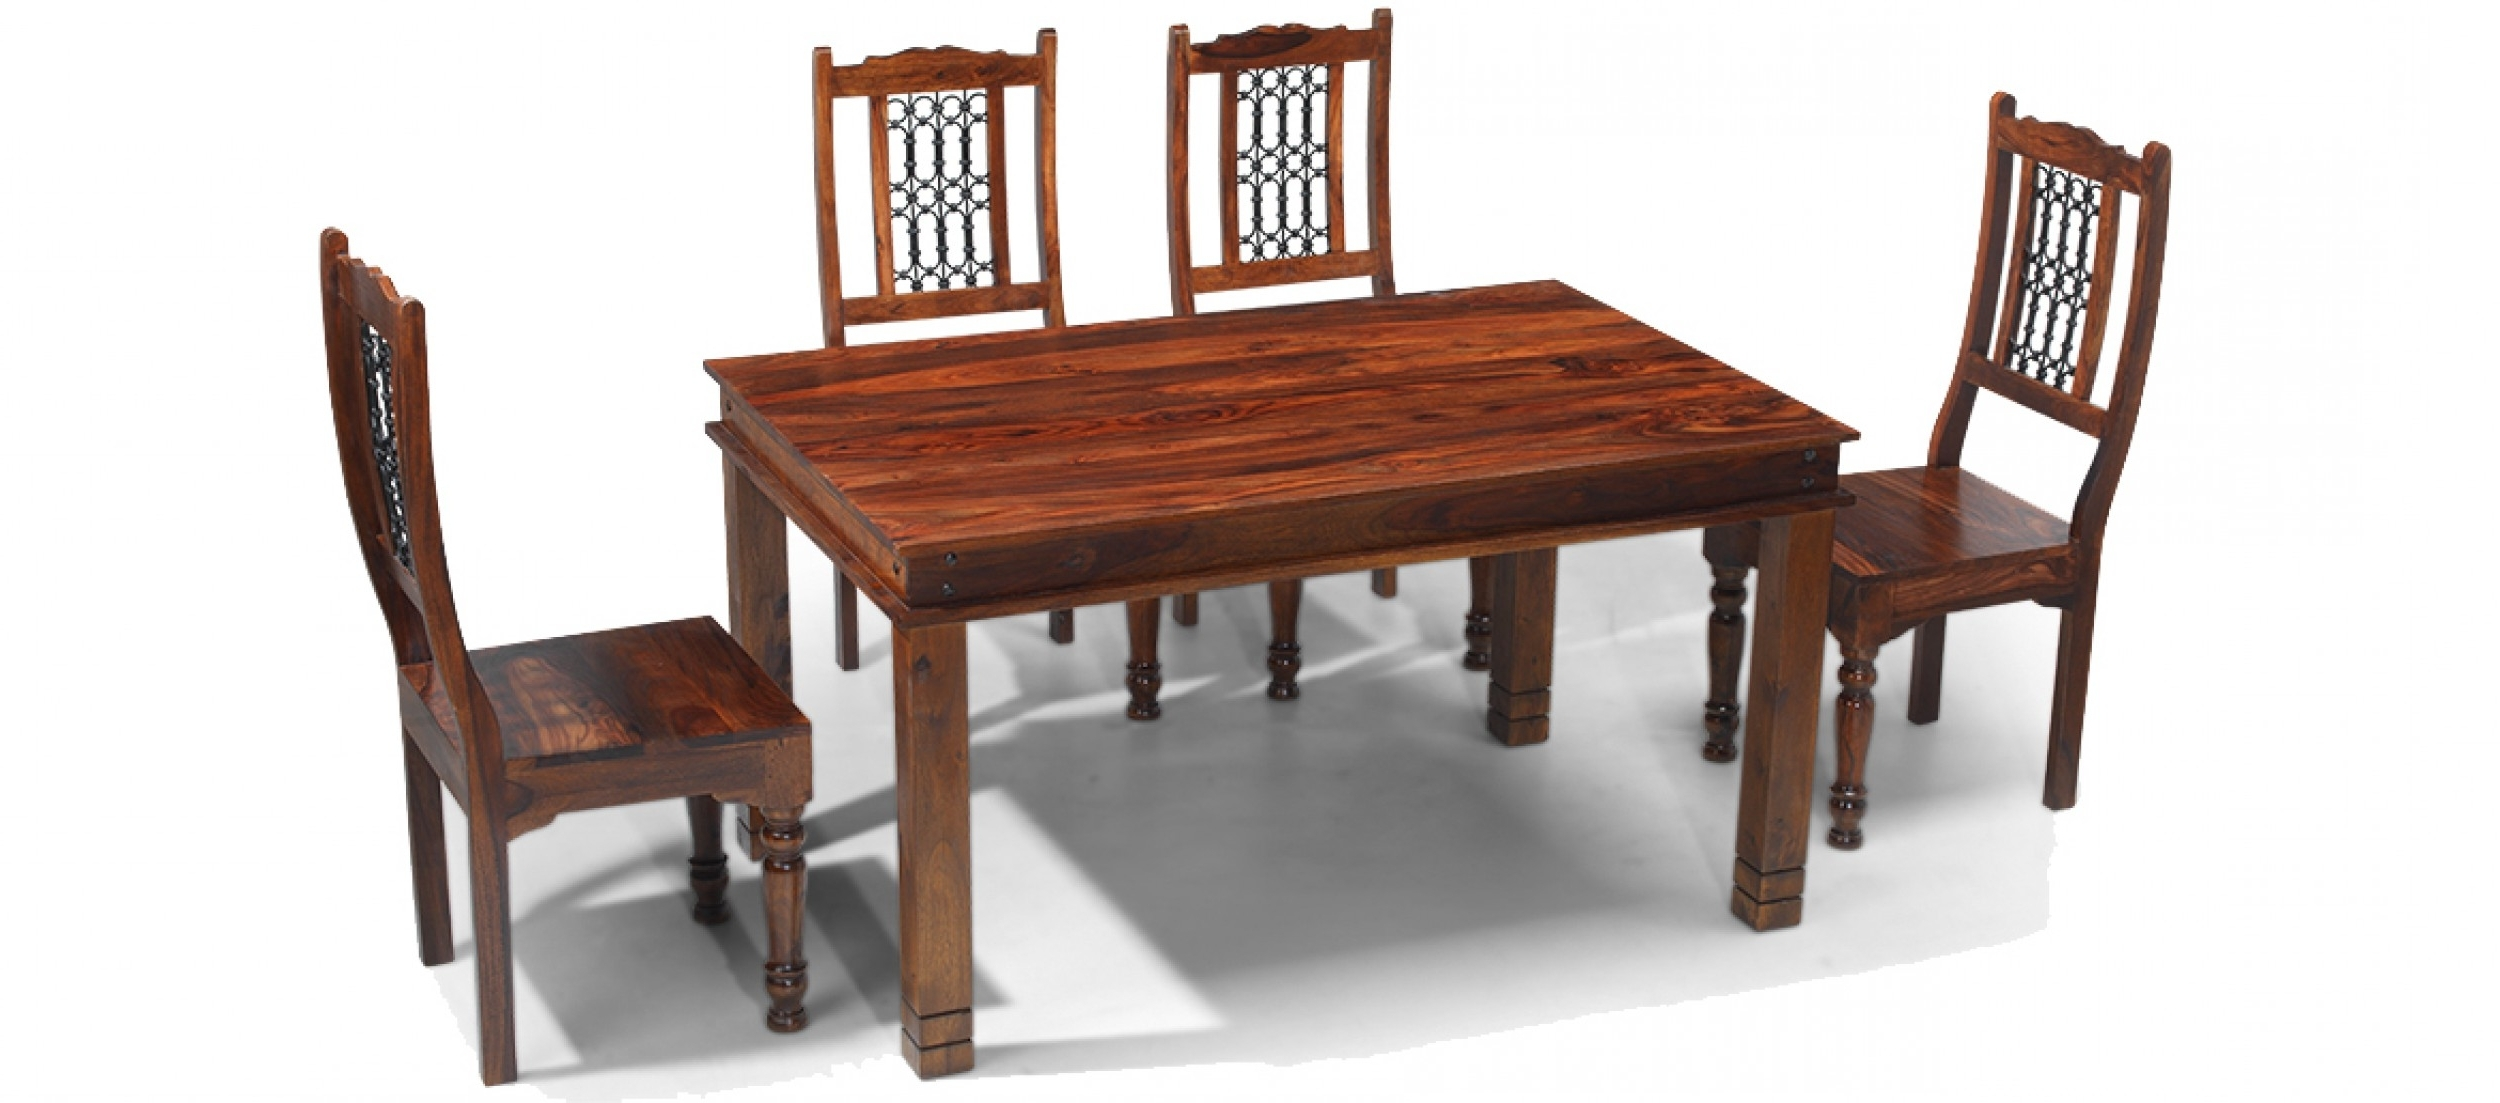 Fashionable Sheesham Dining Tables 8 Chairs Intended For Jali Sheesham 120 Cm Chunky Dining Table And 4 Chairs (View 23 of 25)